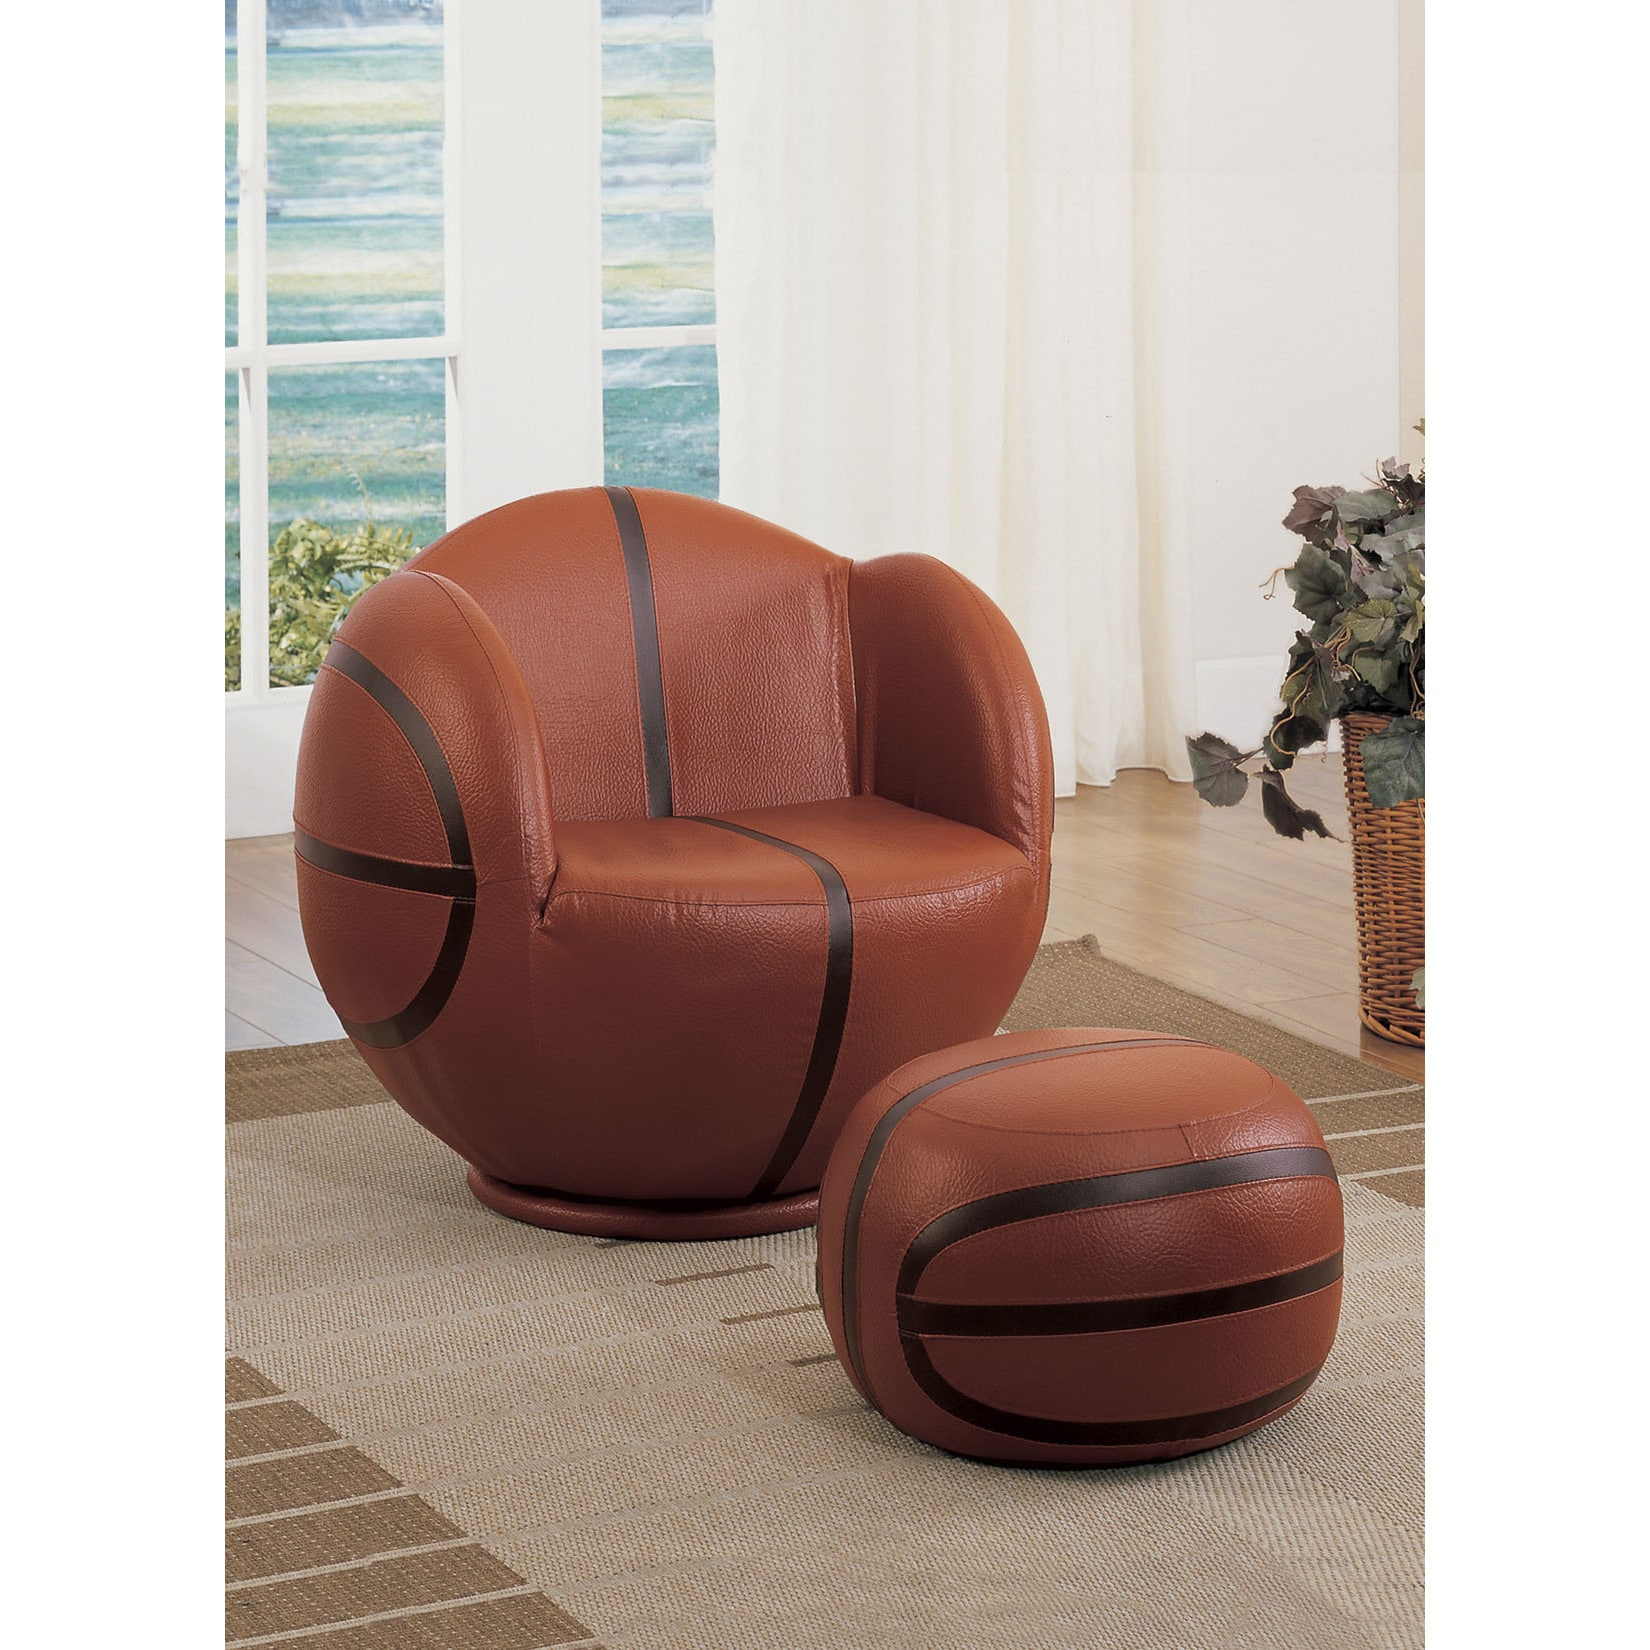 Chair Ottoman 2pc Pack Chair Ottoman Basketball Pu Wood Plywood Sponge Basketball Brown Black